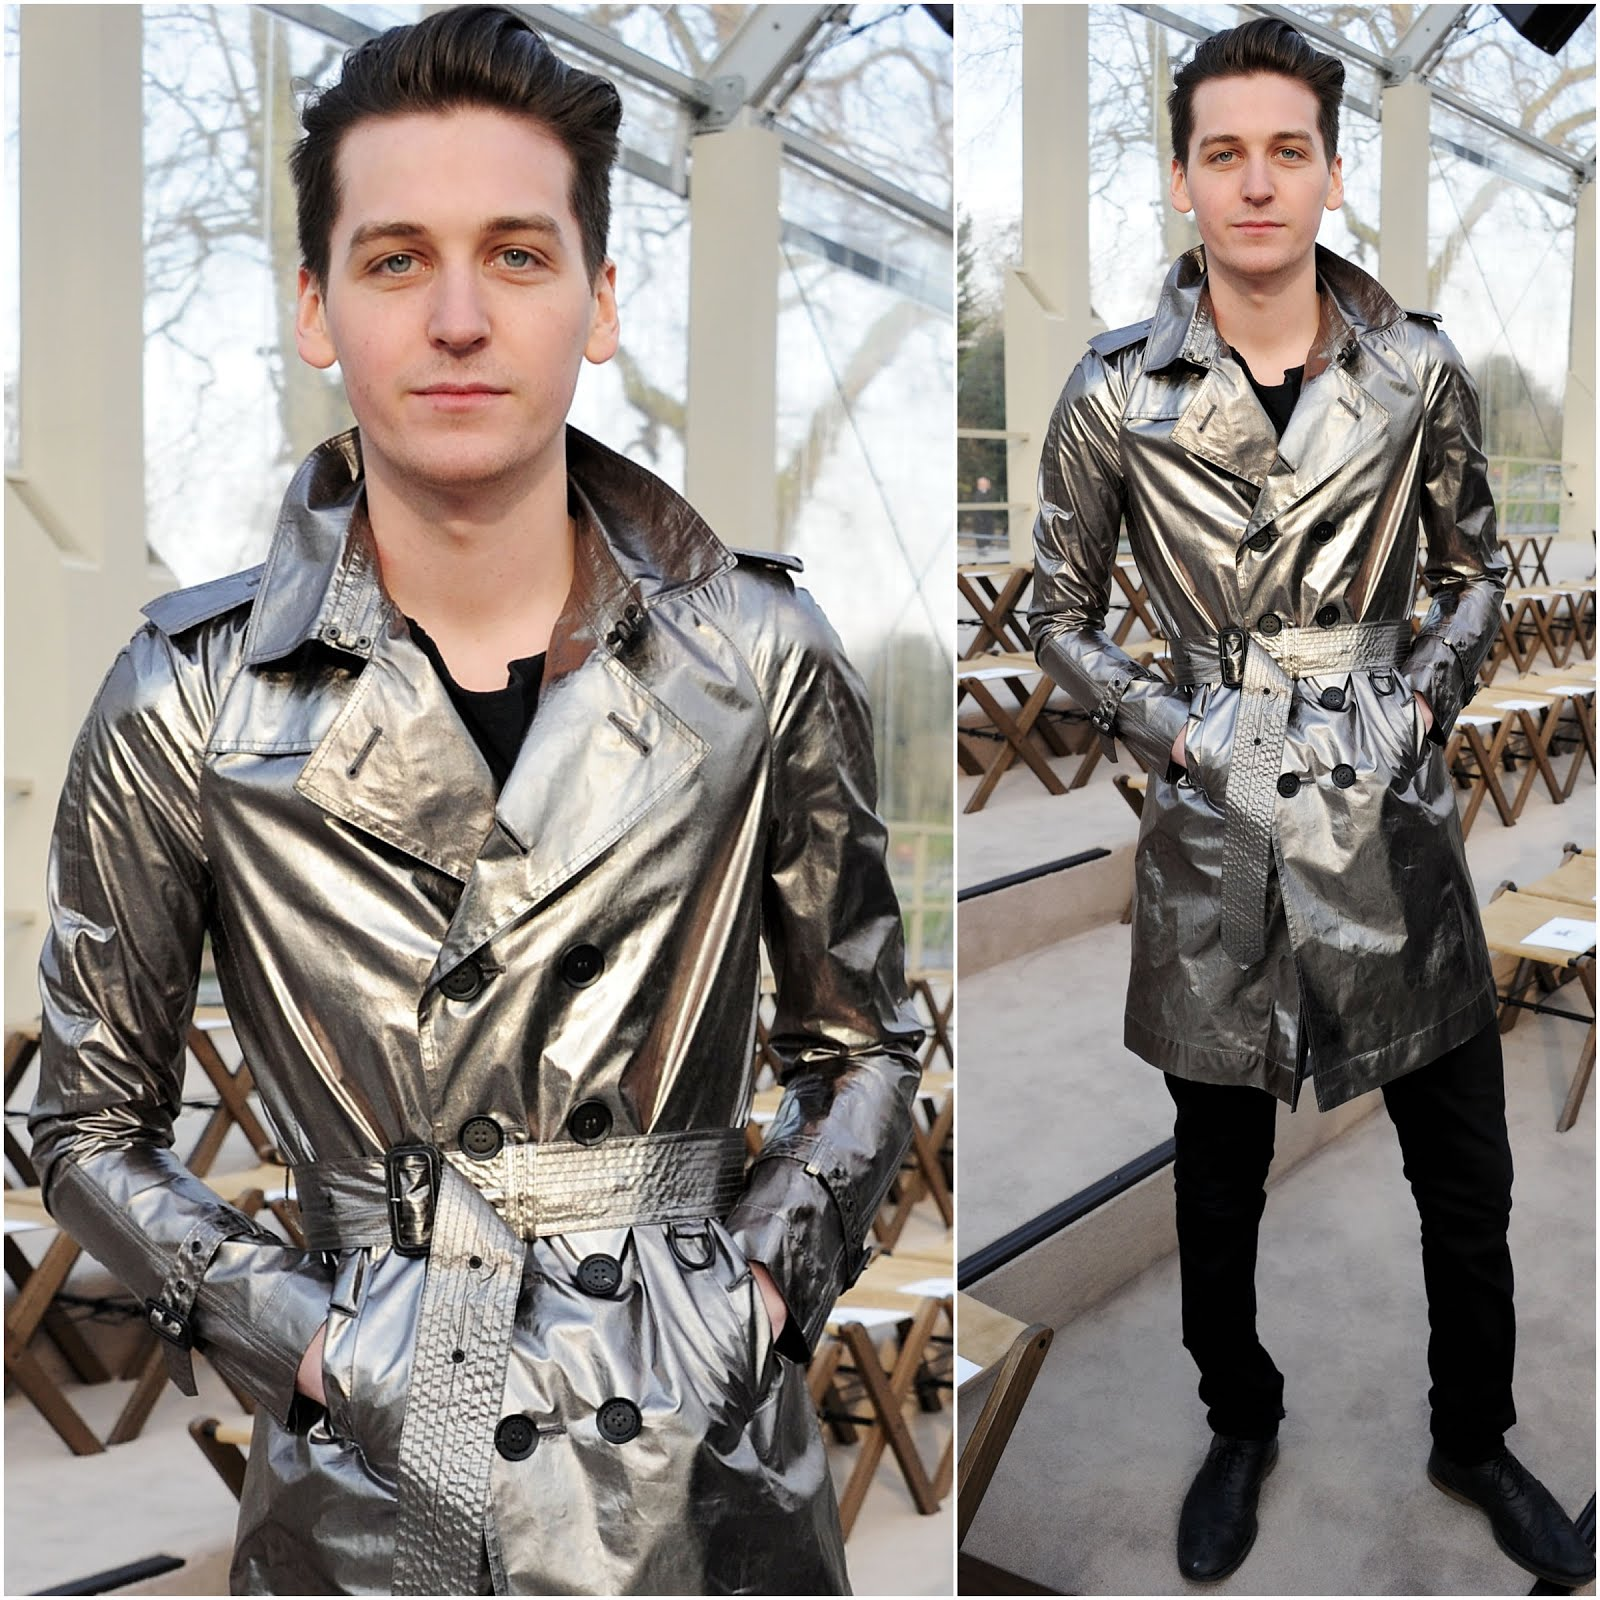 00O00 Menswear Blog George Craig from One Night Only at Burberry Prorsum FW2012 show London Fashion Week February 2013